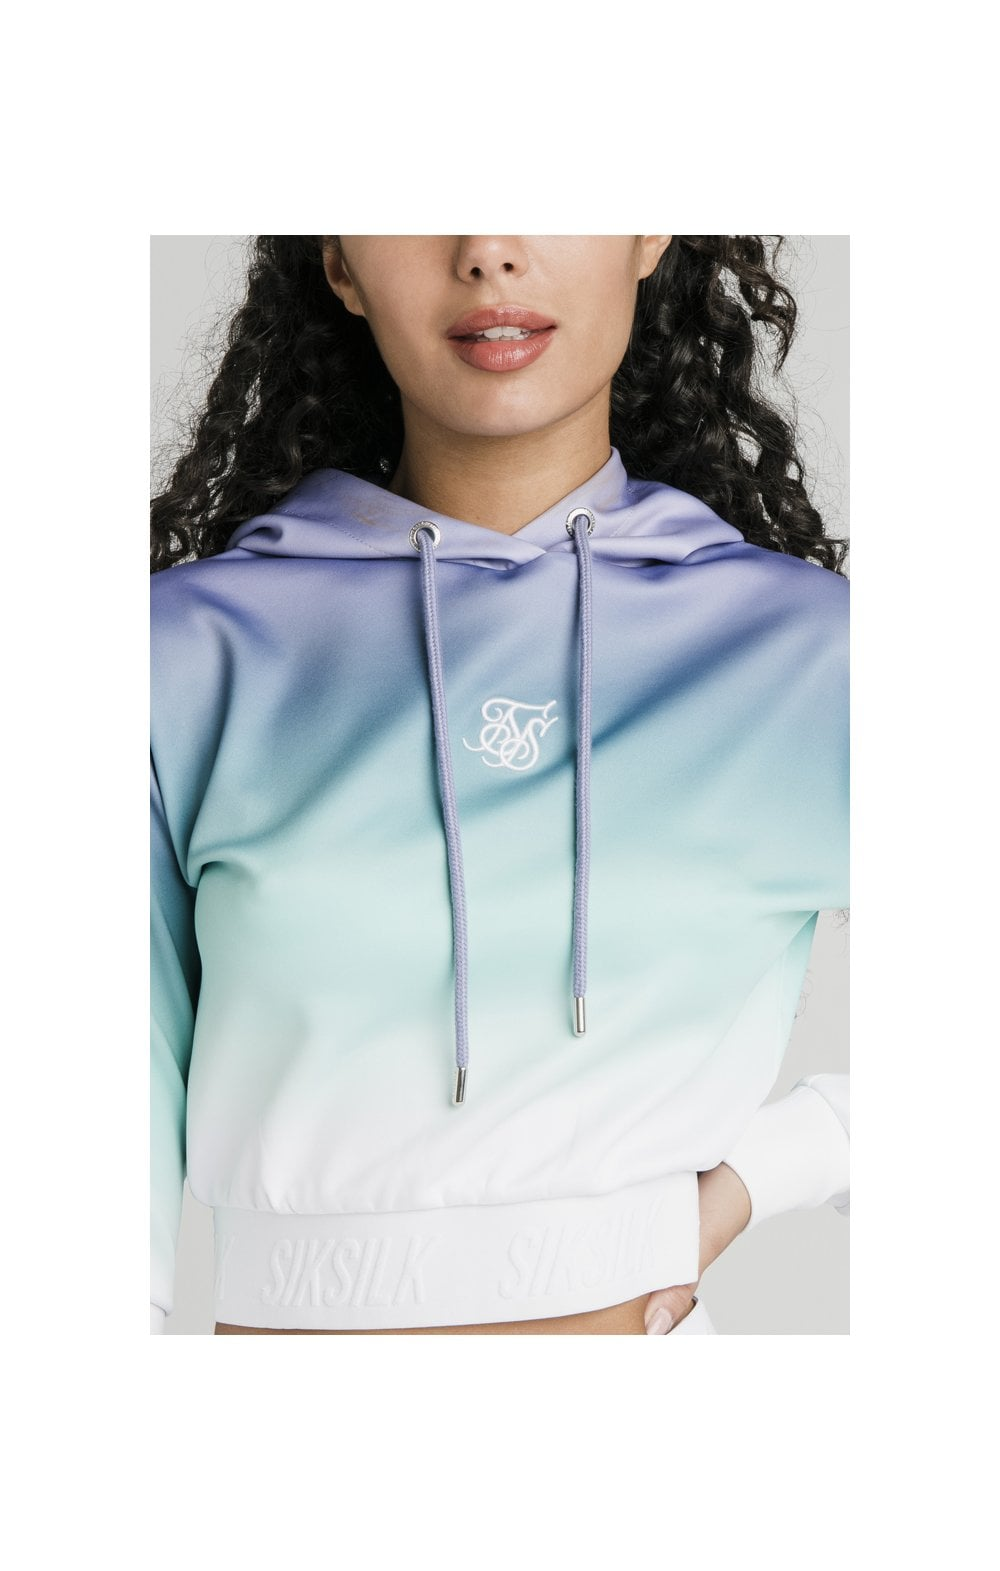 SikSilk Lilac Haze Track Top - Lilac, Turquoise & White